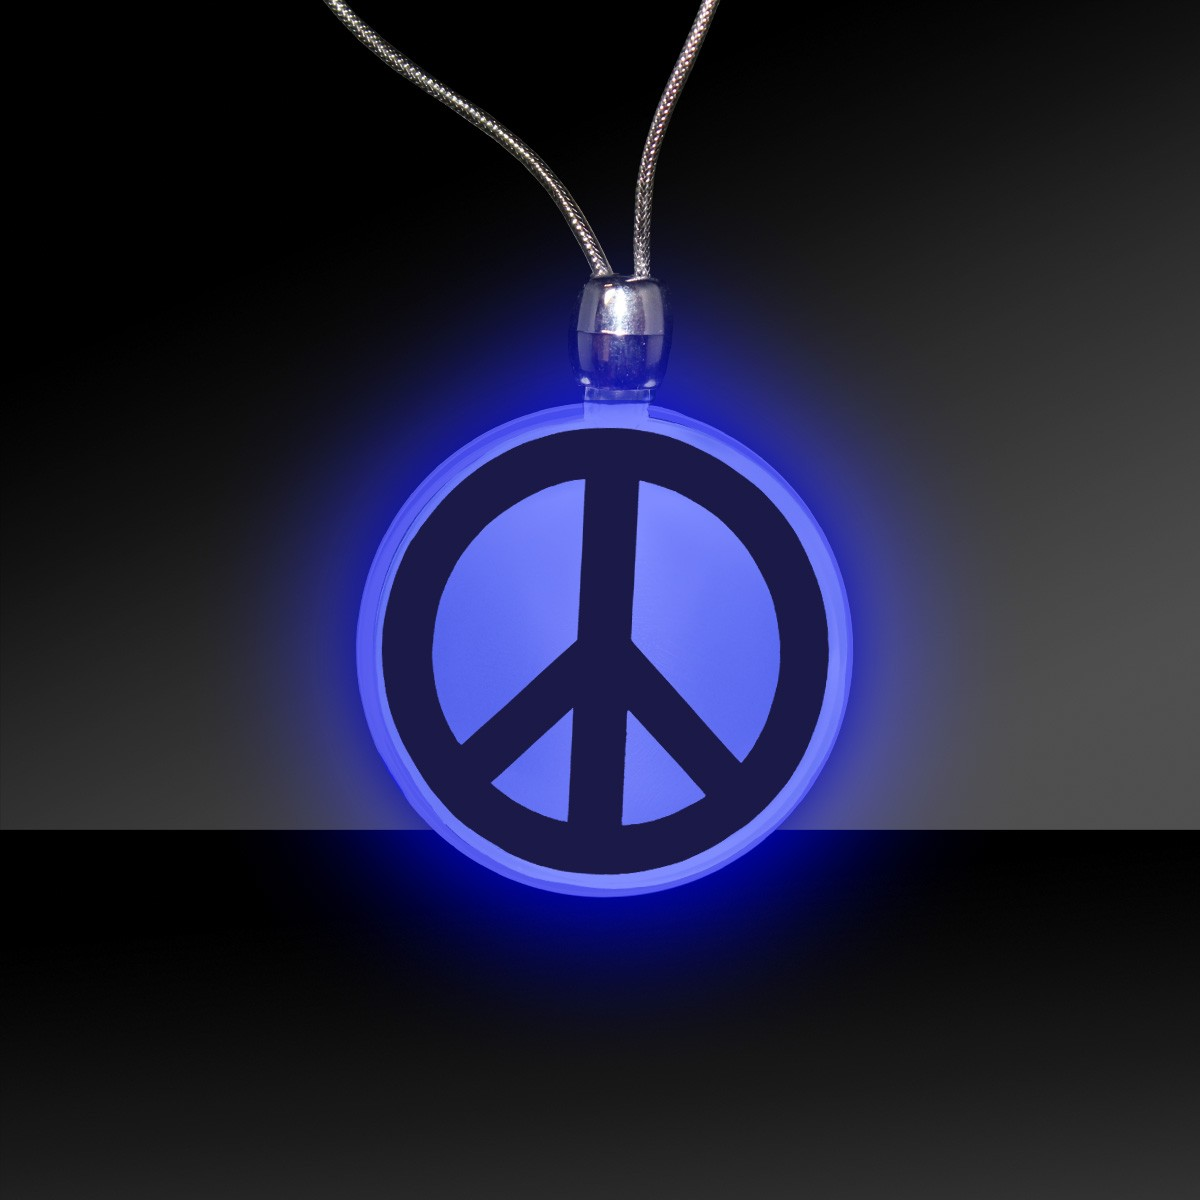 BLUE PEACE SIGN LED NECKLACE